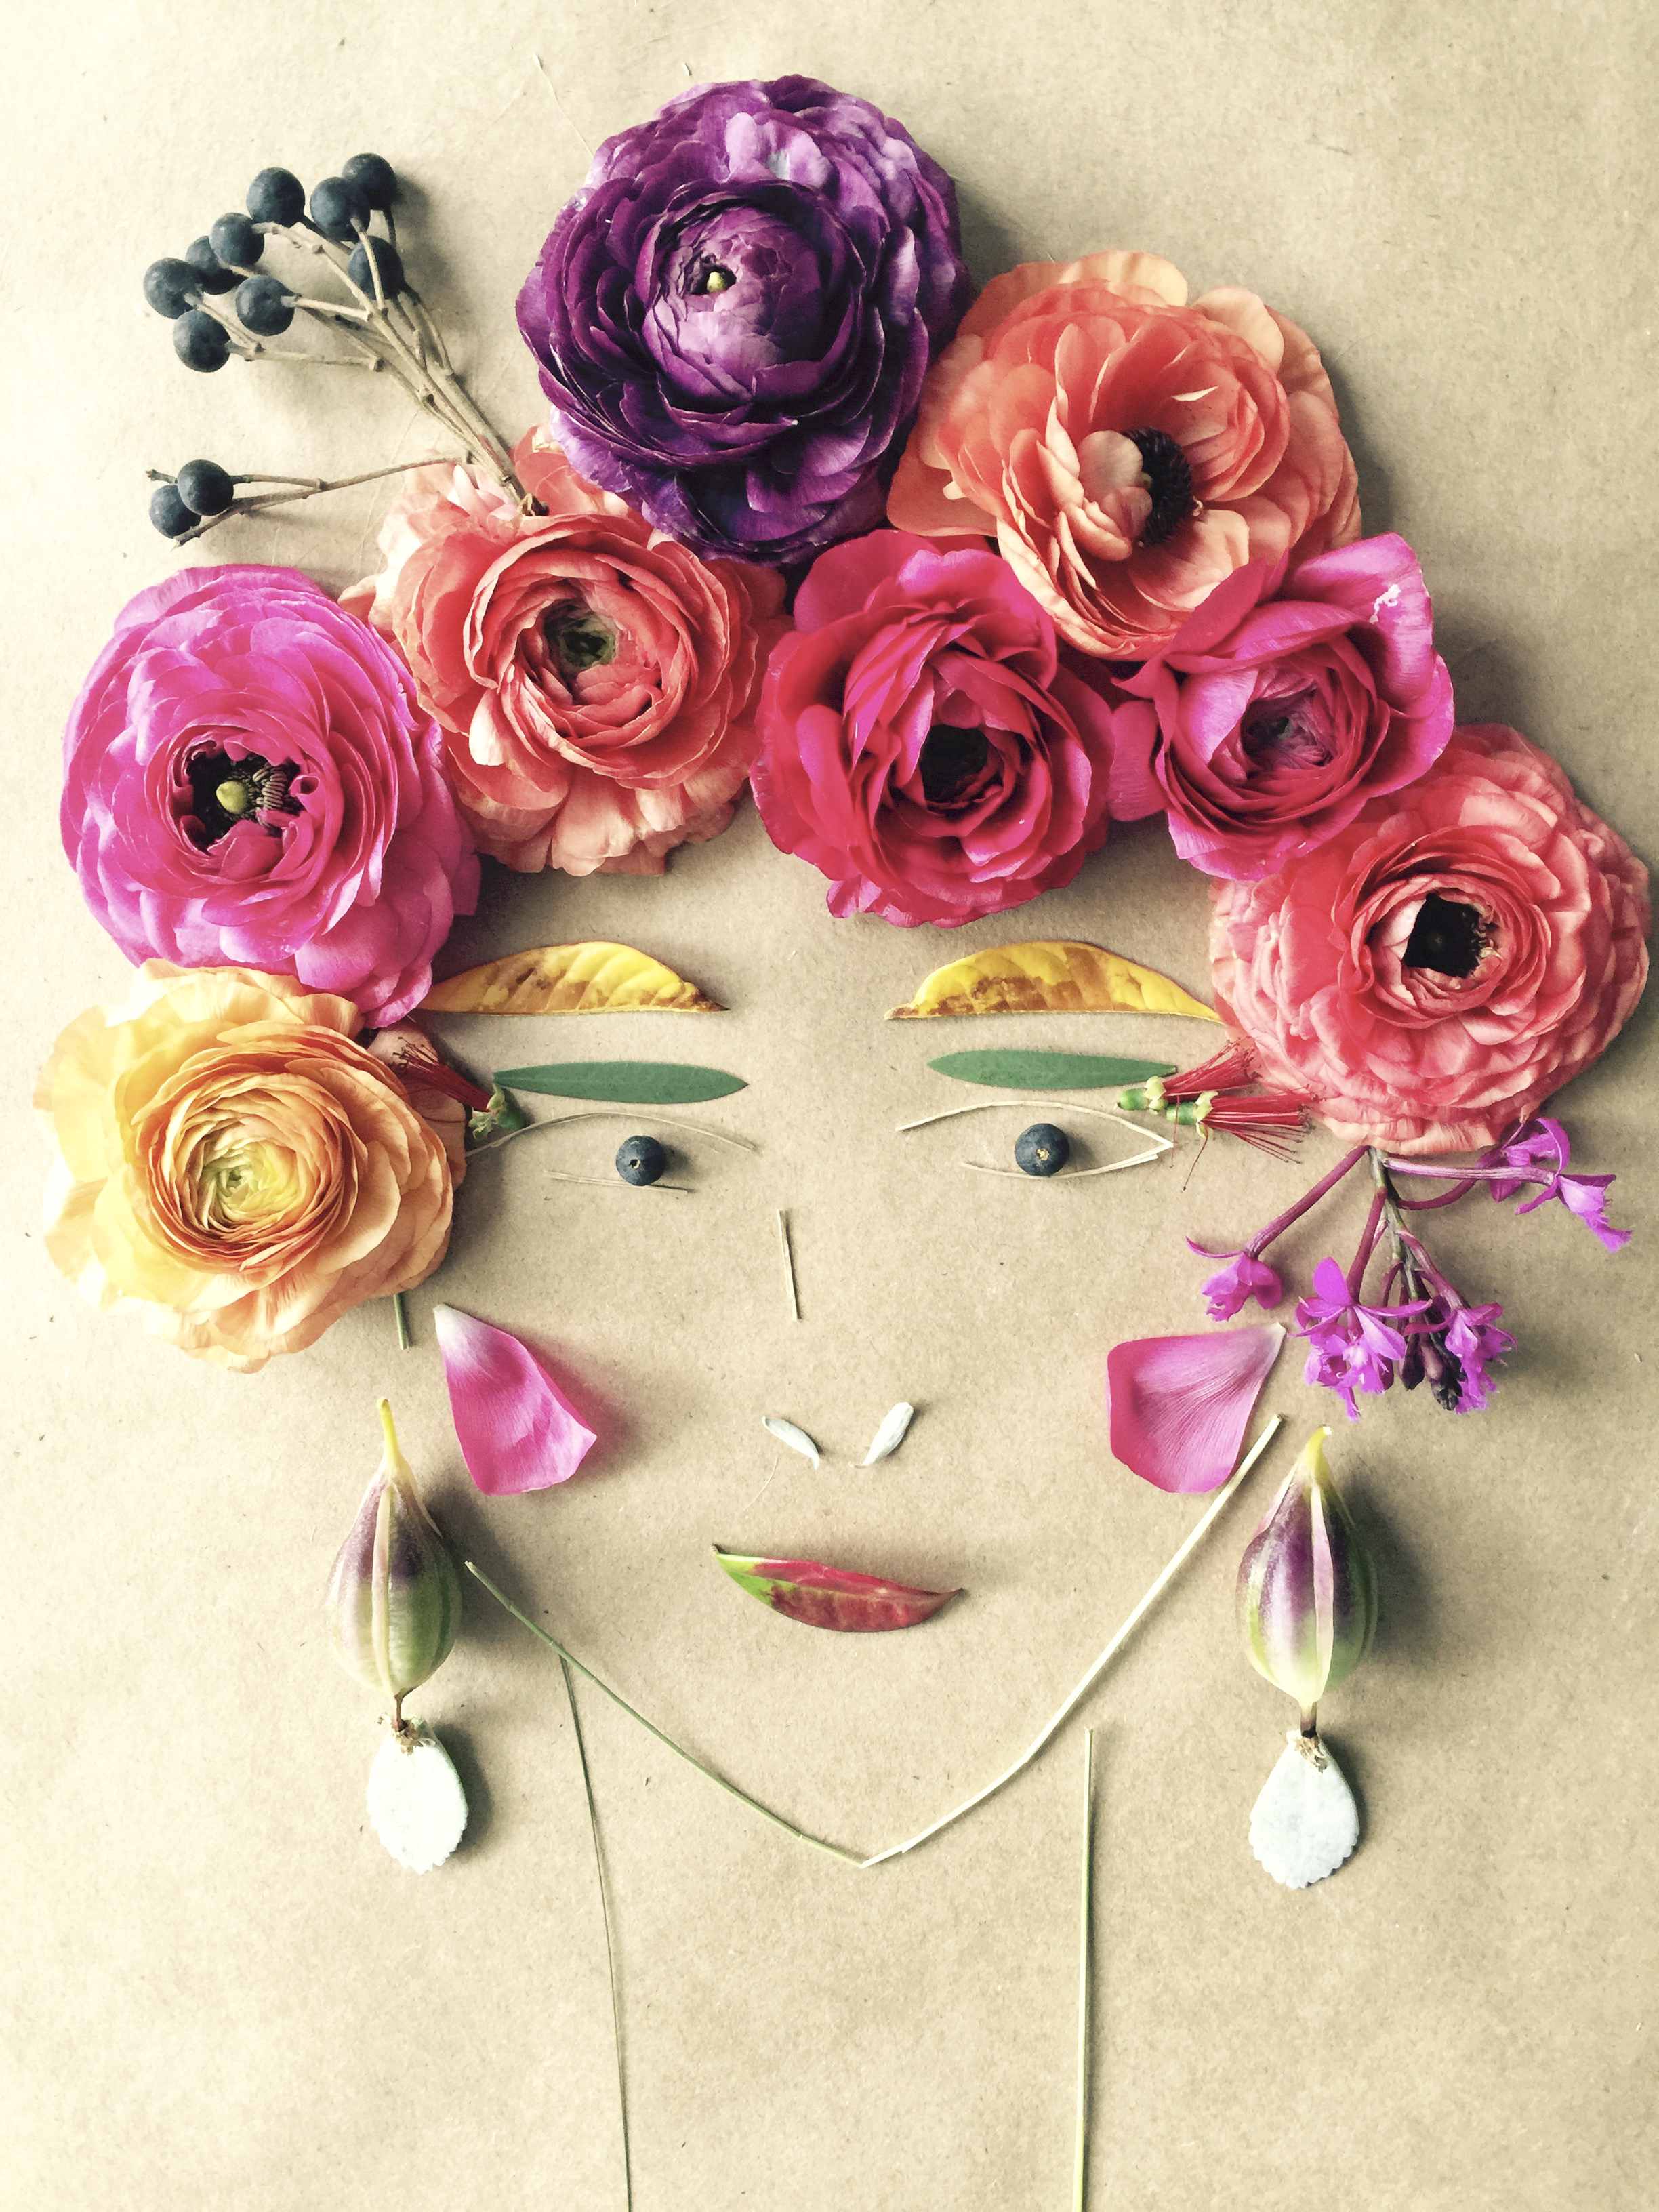 Michelle Larson   - A little whimsy from my playful side. After visiting the flower fields in Carlsbad, California this past weekend, I used the sherbet colored ranunculus and other foliage finds from around my neighborhood to create BLOSSOM. That's her name. Isn't she pretty?! What fun!!